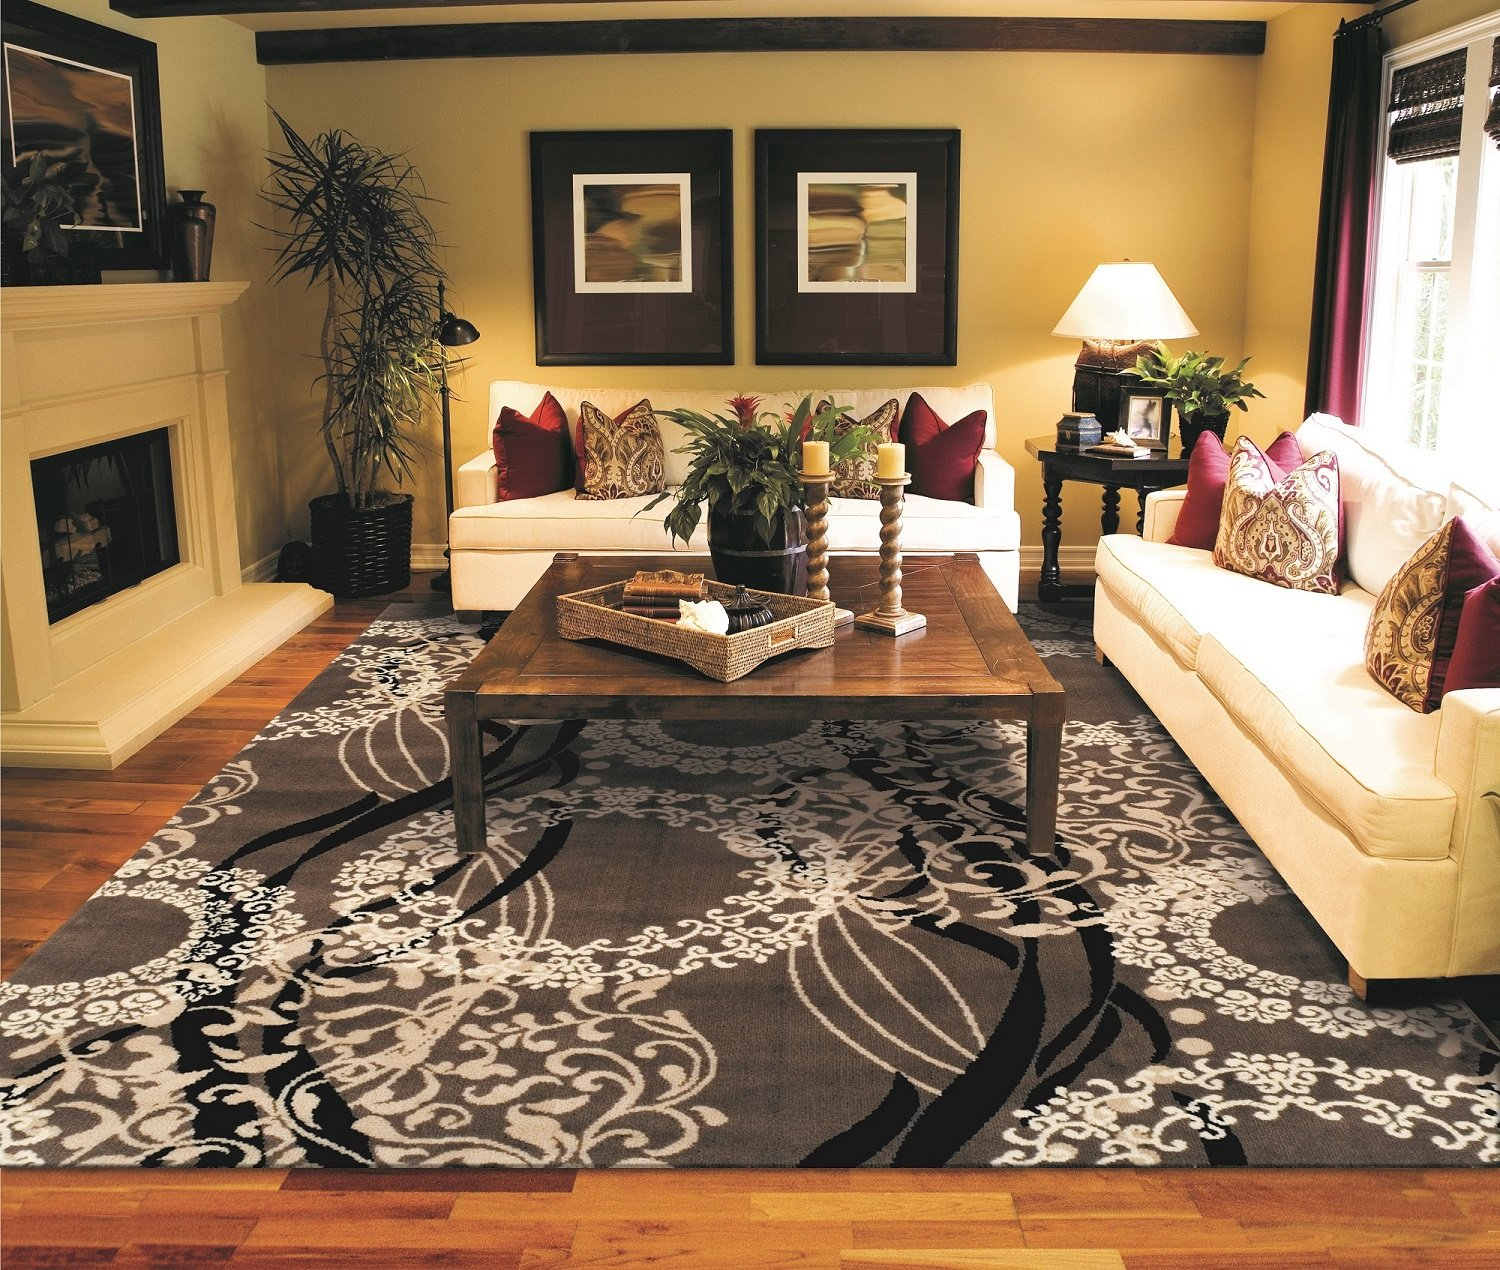 Amazon com as quality rugs modern brown rugs for living room 8x10 clearance kitchen dining